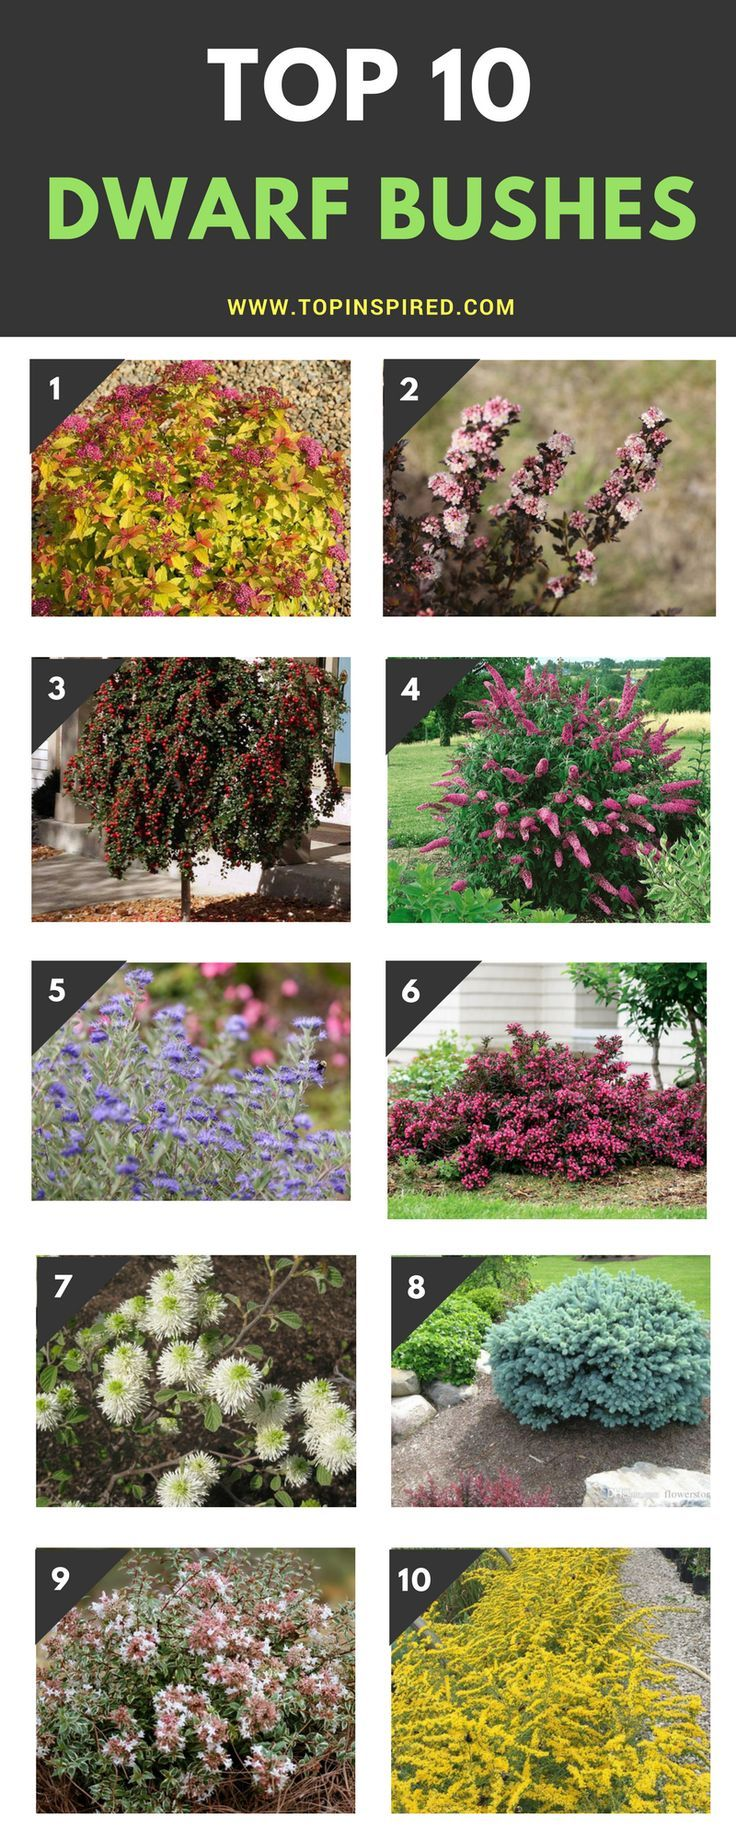 Top 4 Dwarf Flowering Bushes for a Fairy Tale Garden - Top